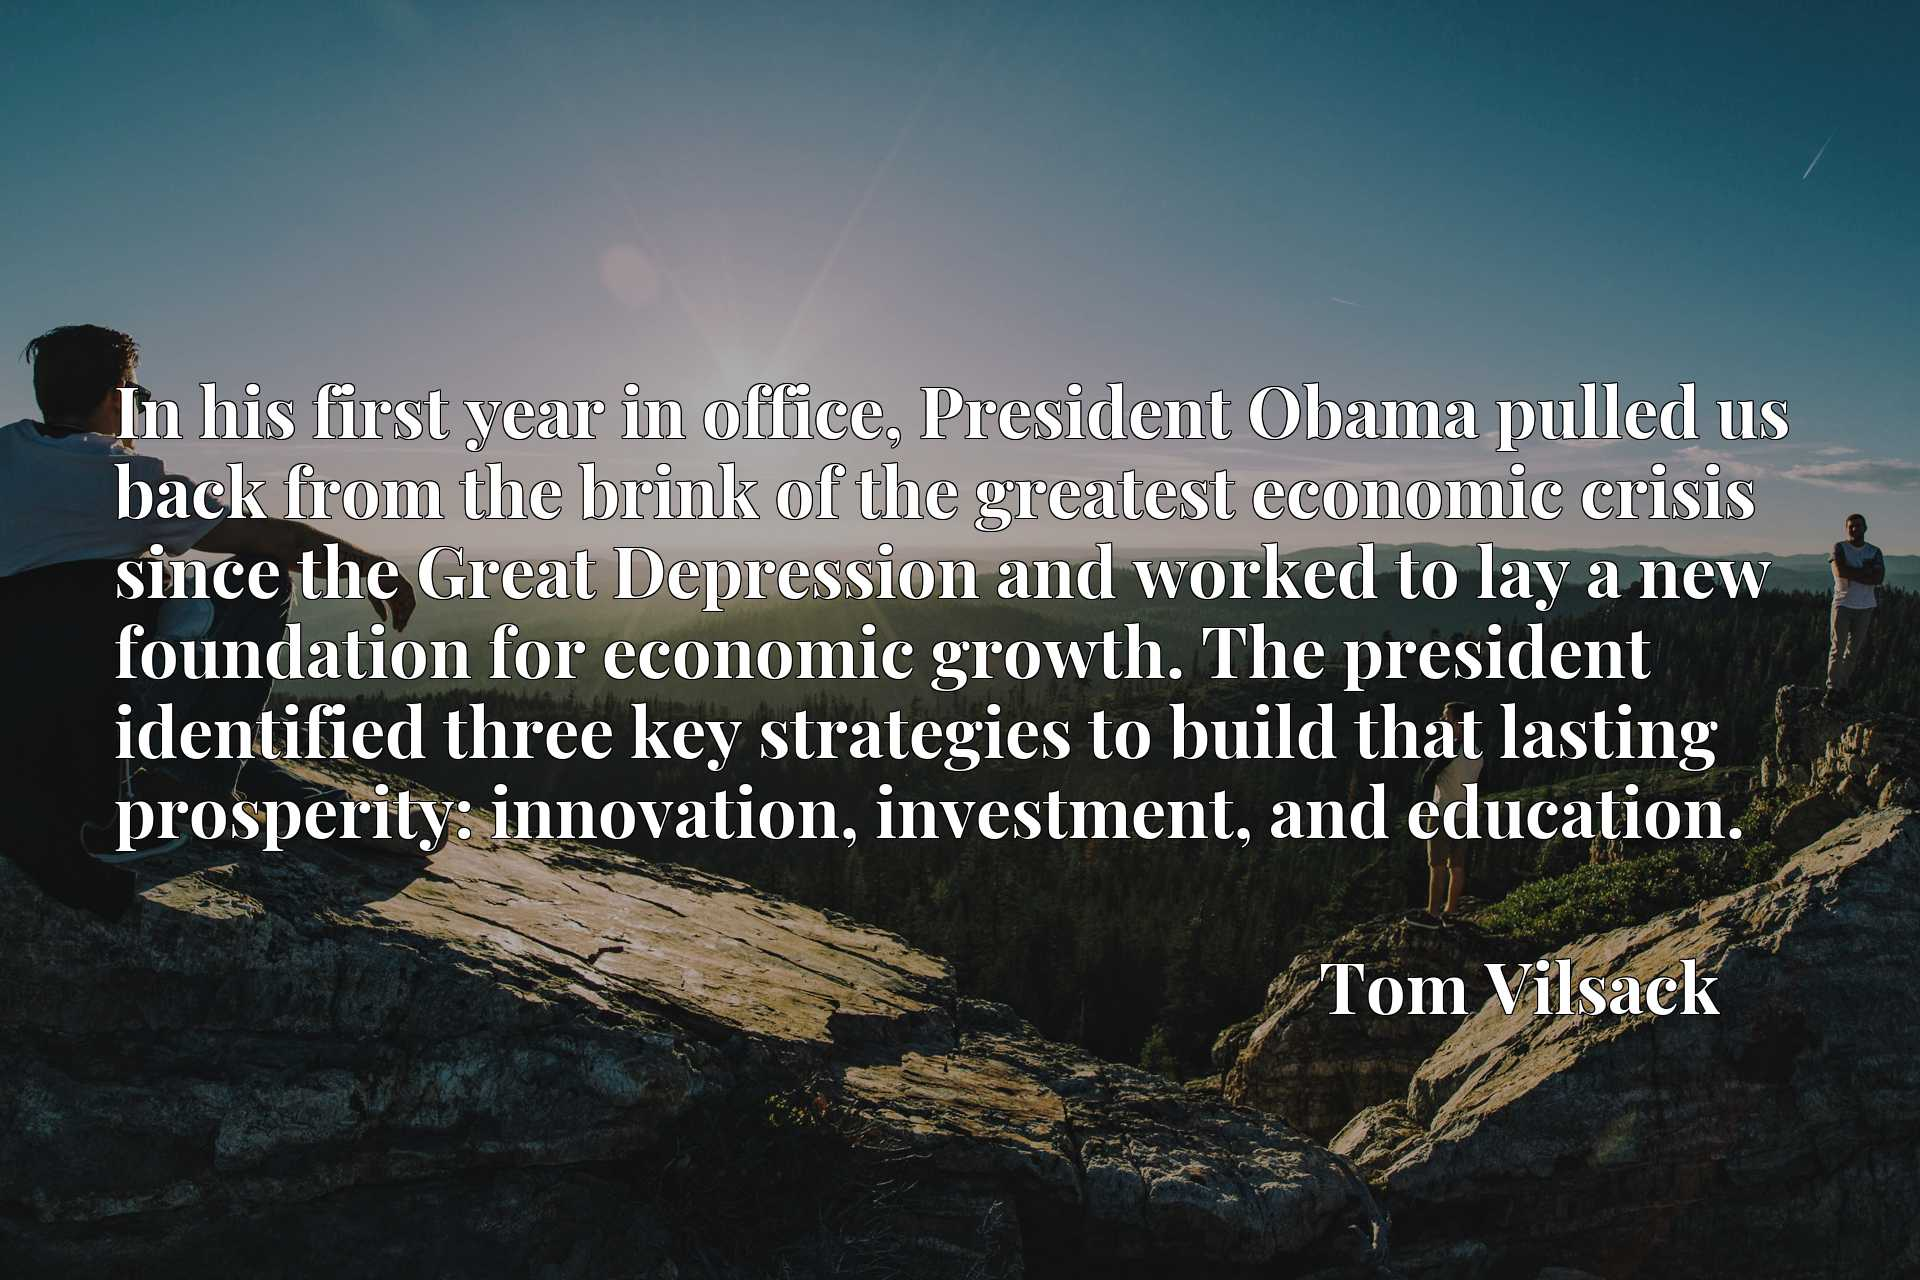 In his first year in office, President Obama pulled us back from the brink of the greatest economic crisis since the Great Depression and worked to lay a new foundation for economic growth. The president identified three key strategies to build that lasting prosperity: innovation, investment, and education.